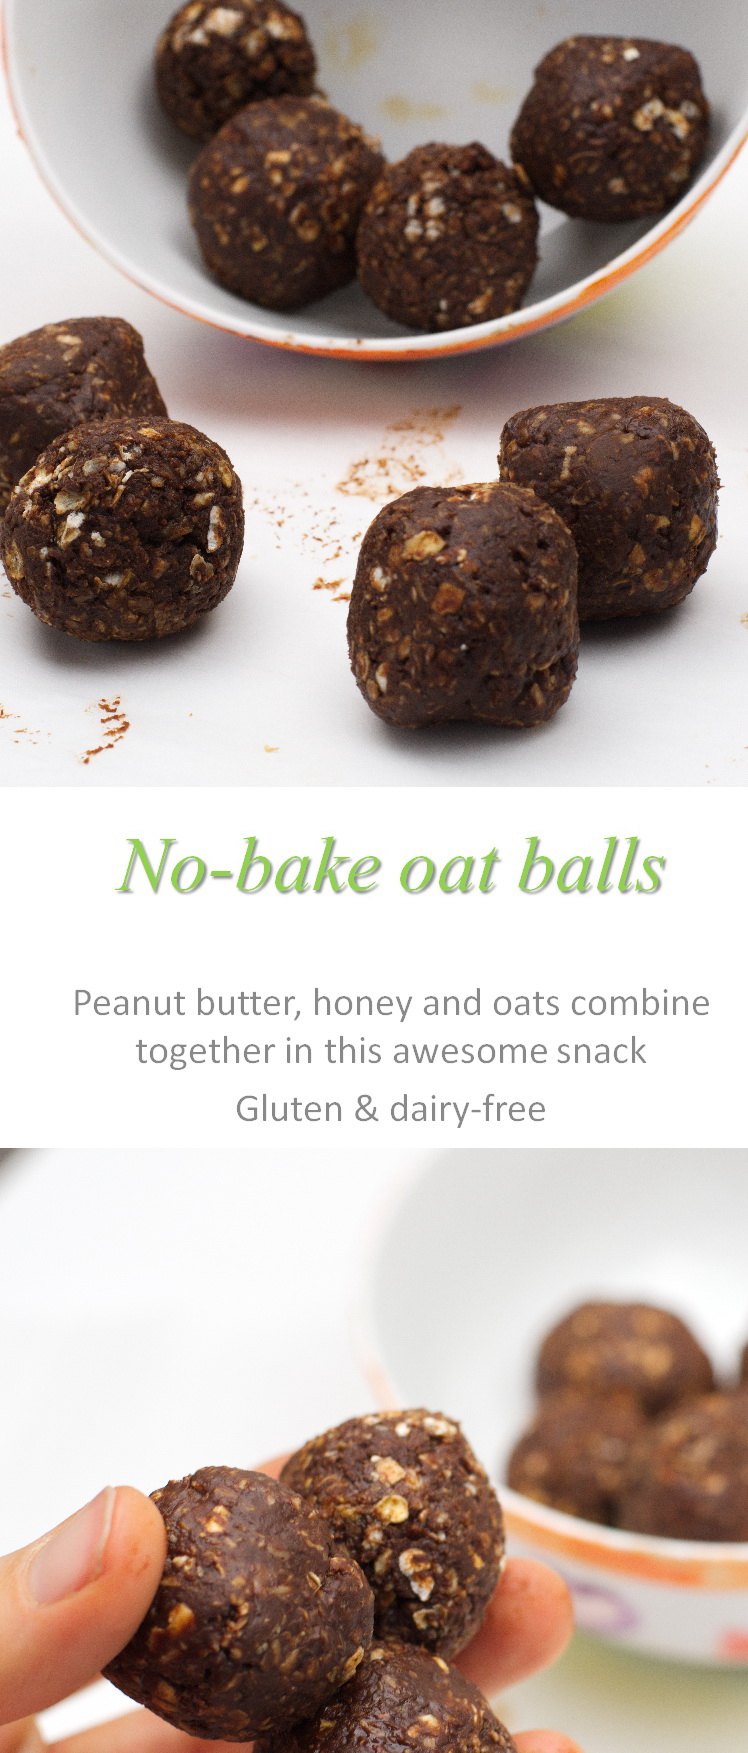 An easy no-bake recipe that combines chocolate, peanut butter and oats into bite-sized oat balls. #oatballs